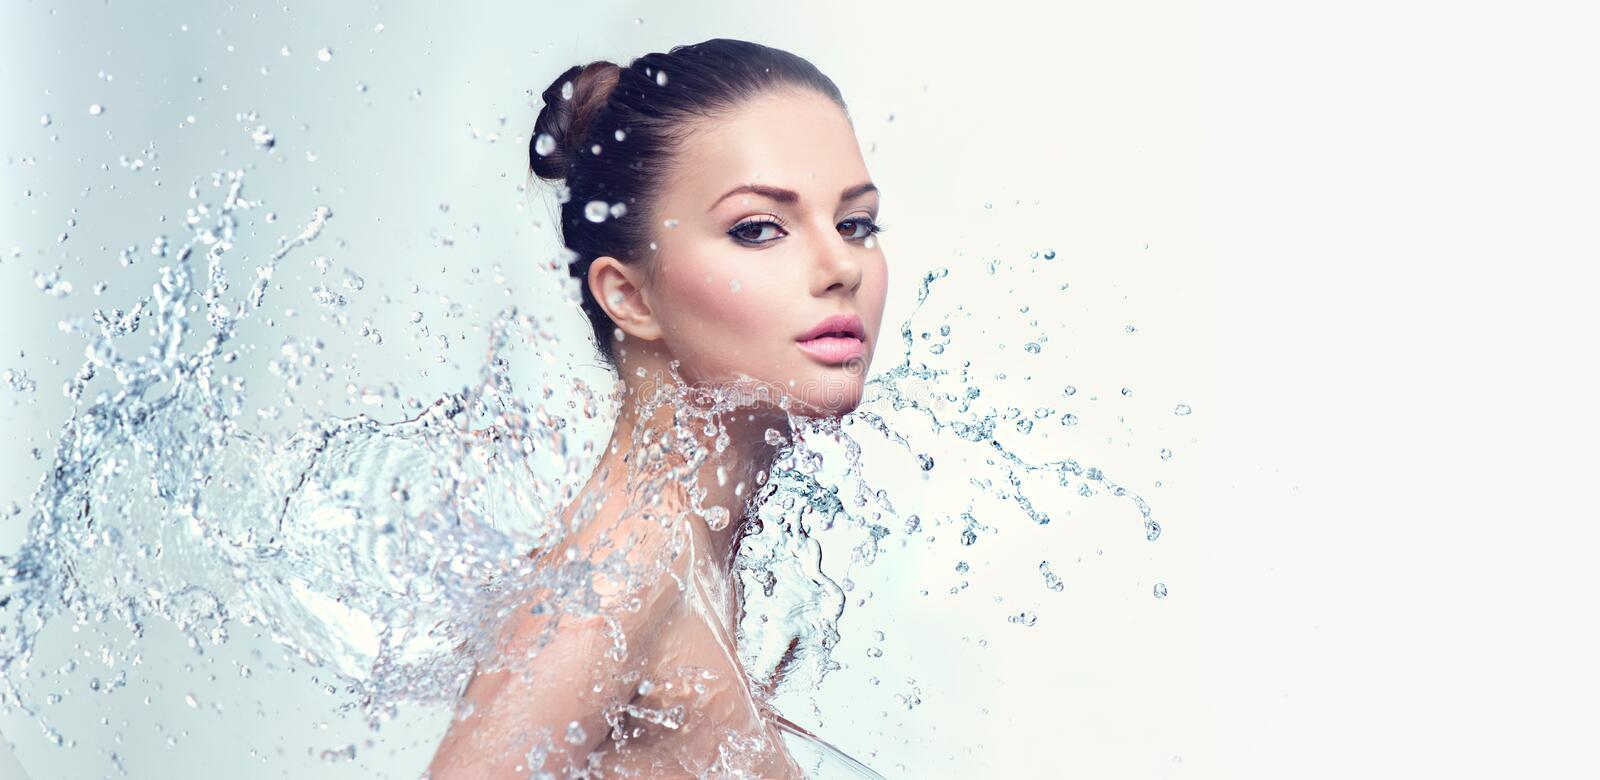 Spa woman with splashes of water. Beautiful spa woman with splashes of water stock photo